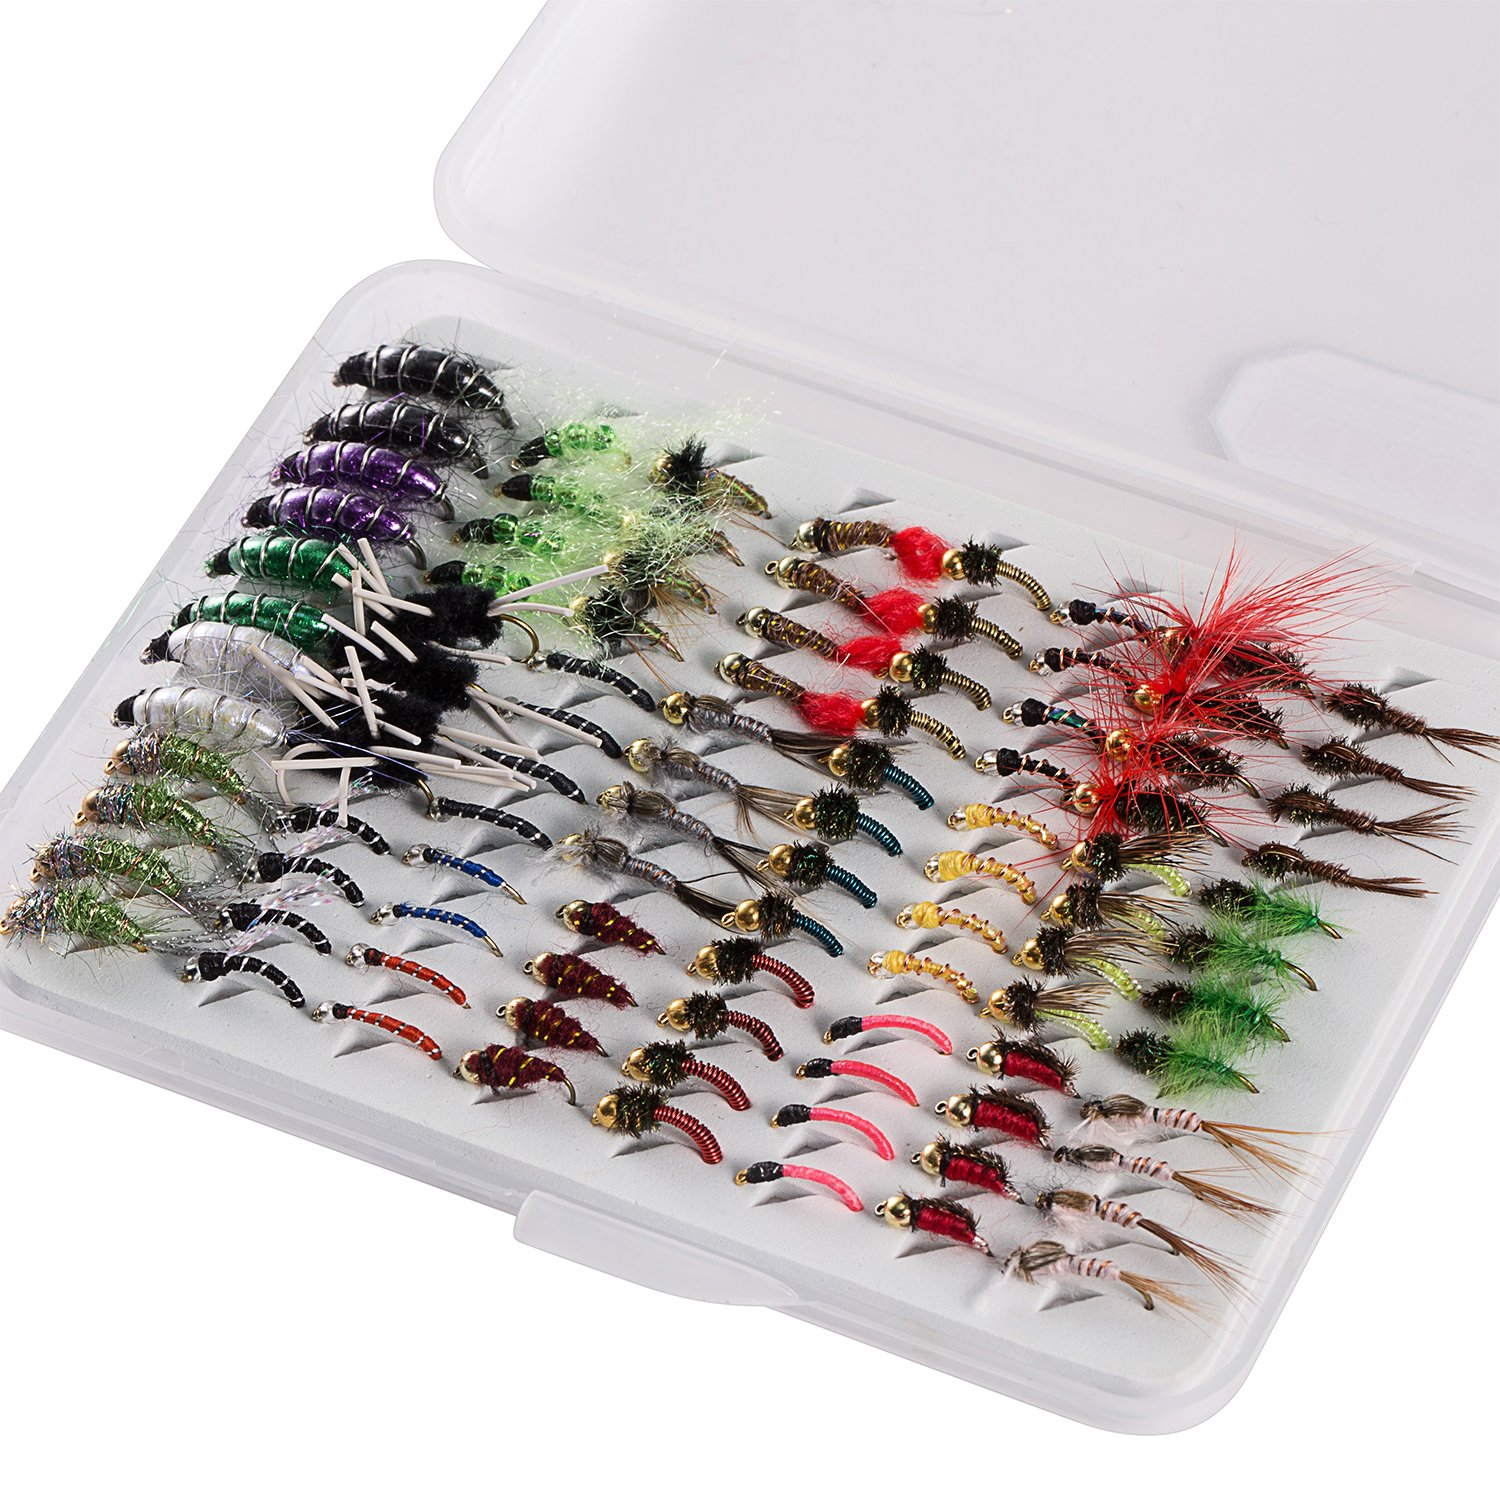 Bassdash Fly Fishing Nymph Flies Kit, Pack of 96 pcs Fly Lure, with Ultrathin Fly Box by Bassdash